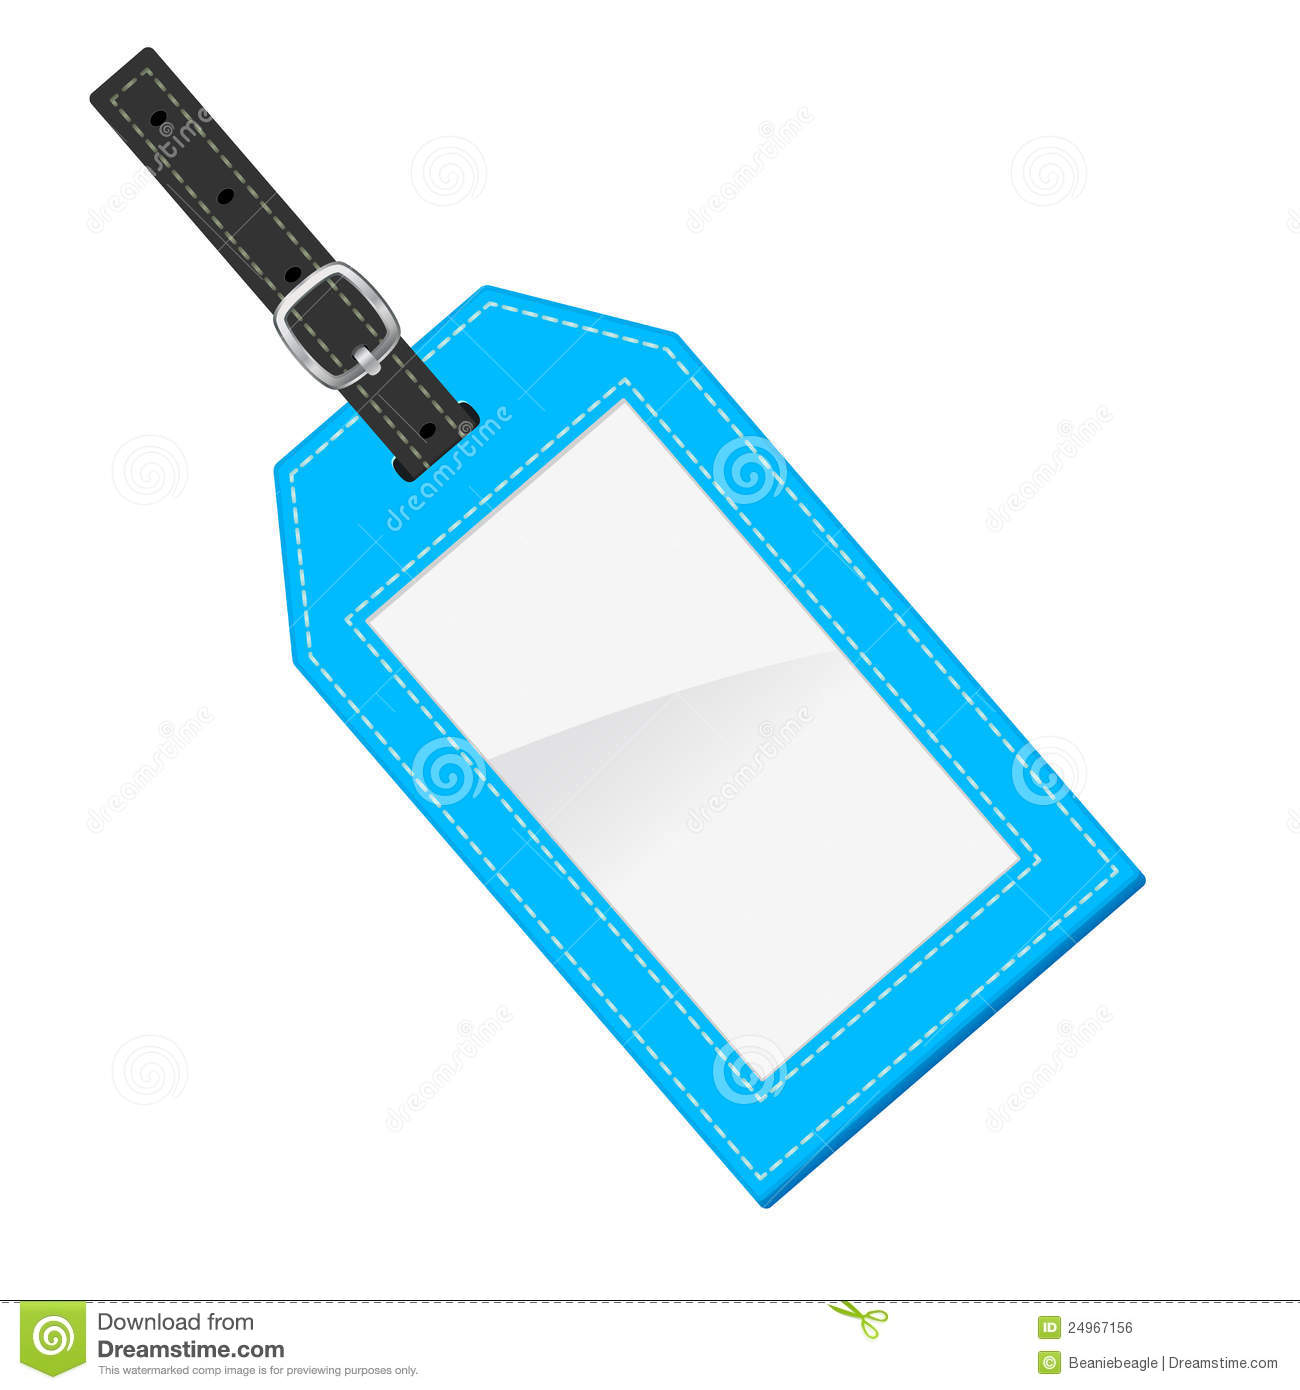 Luggage Tag stock vector. Illustration of background.